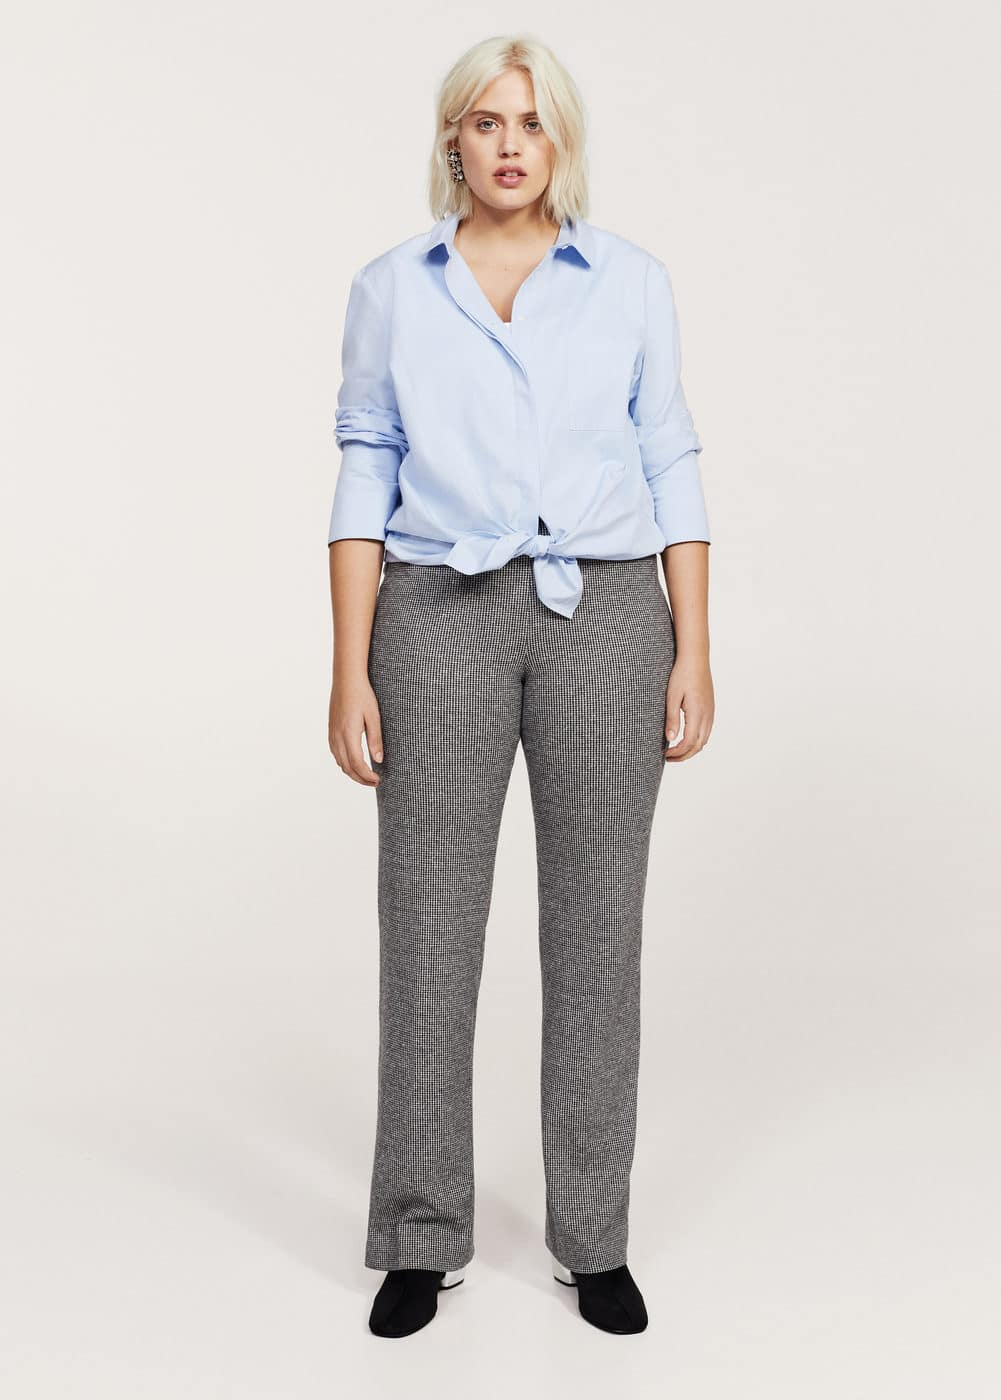 Mini houndstooth trousers | VIOLETA BY MANGO